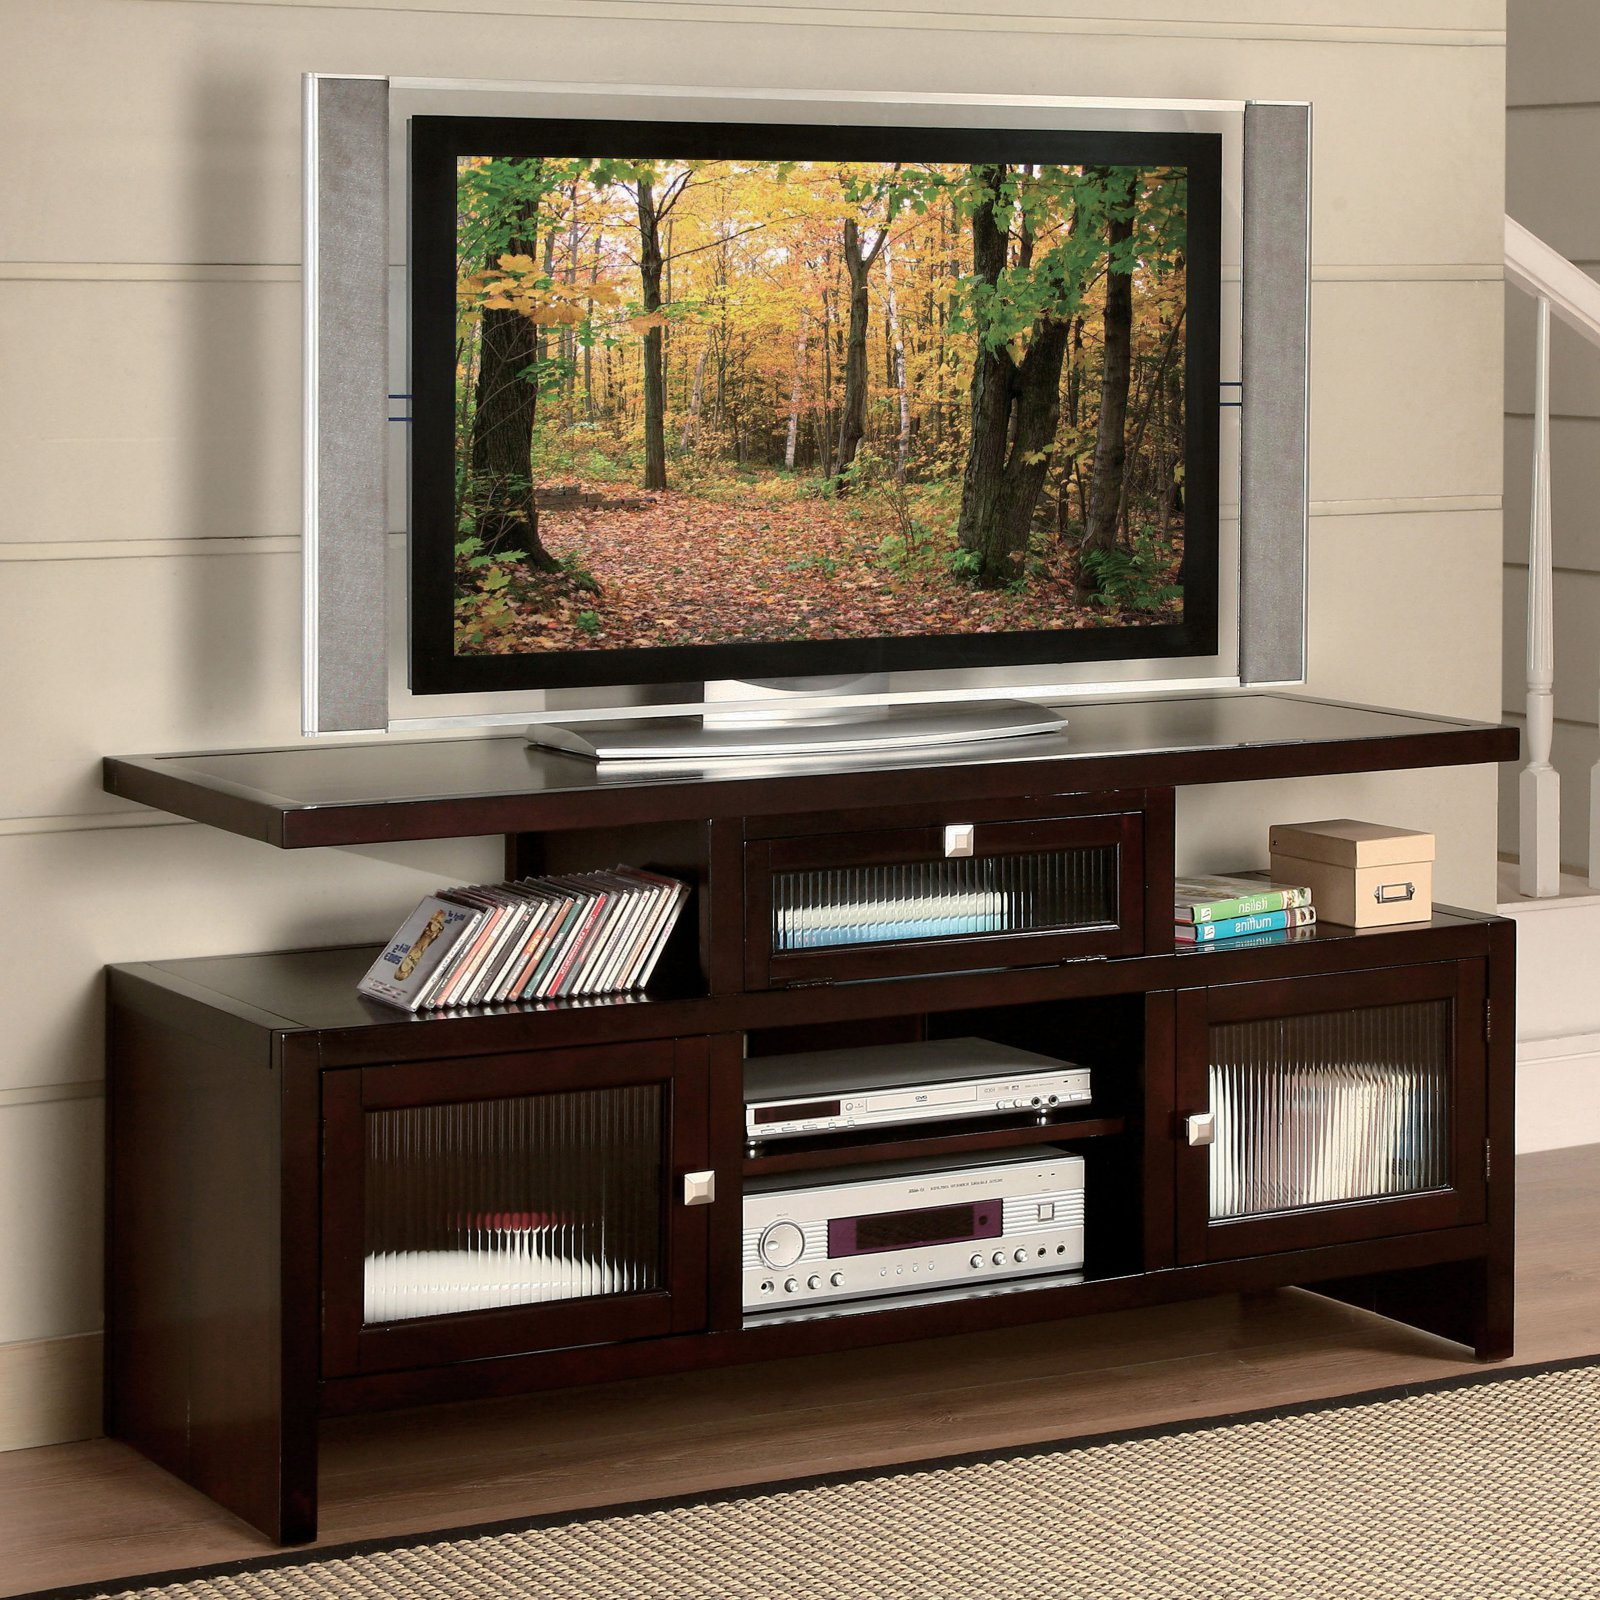 """Acme Jupiter Foldable Tv Stand For Tvs Up To 70"""", Espresso Intended For Kinsella Tv Stands For Tvs Up To 70"""" (View 5 of 20)"""